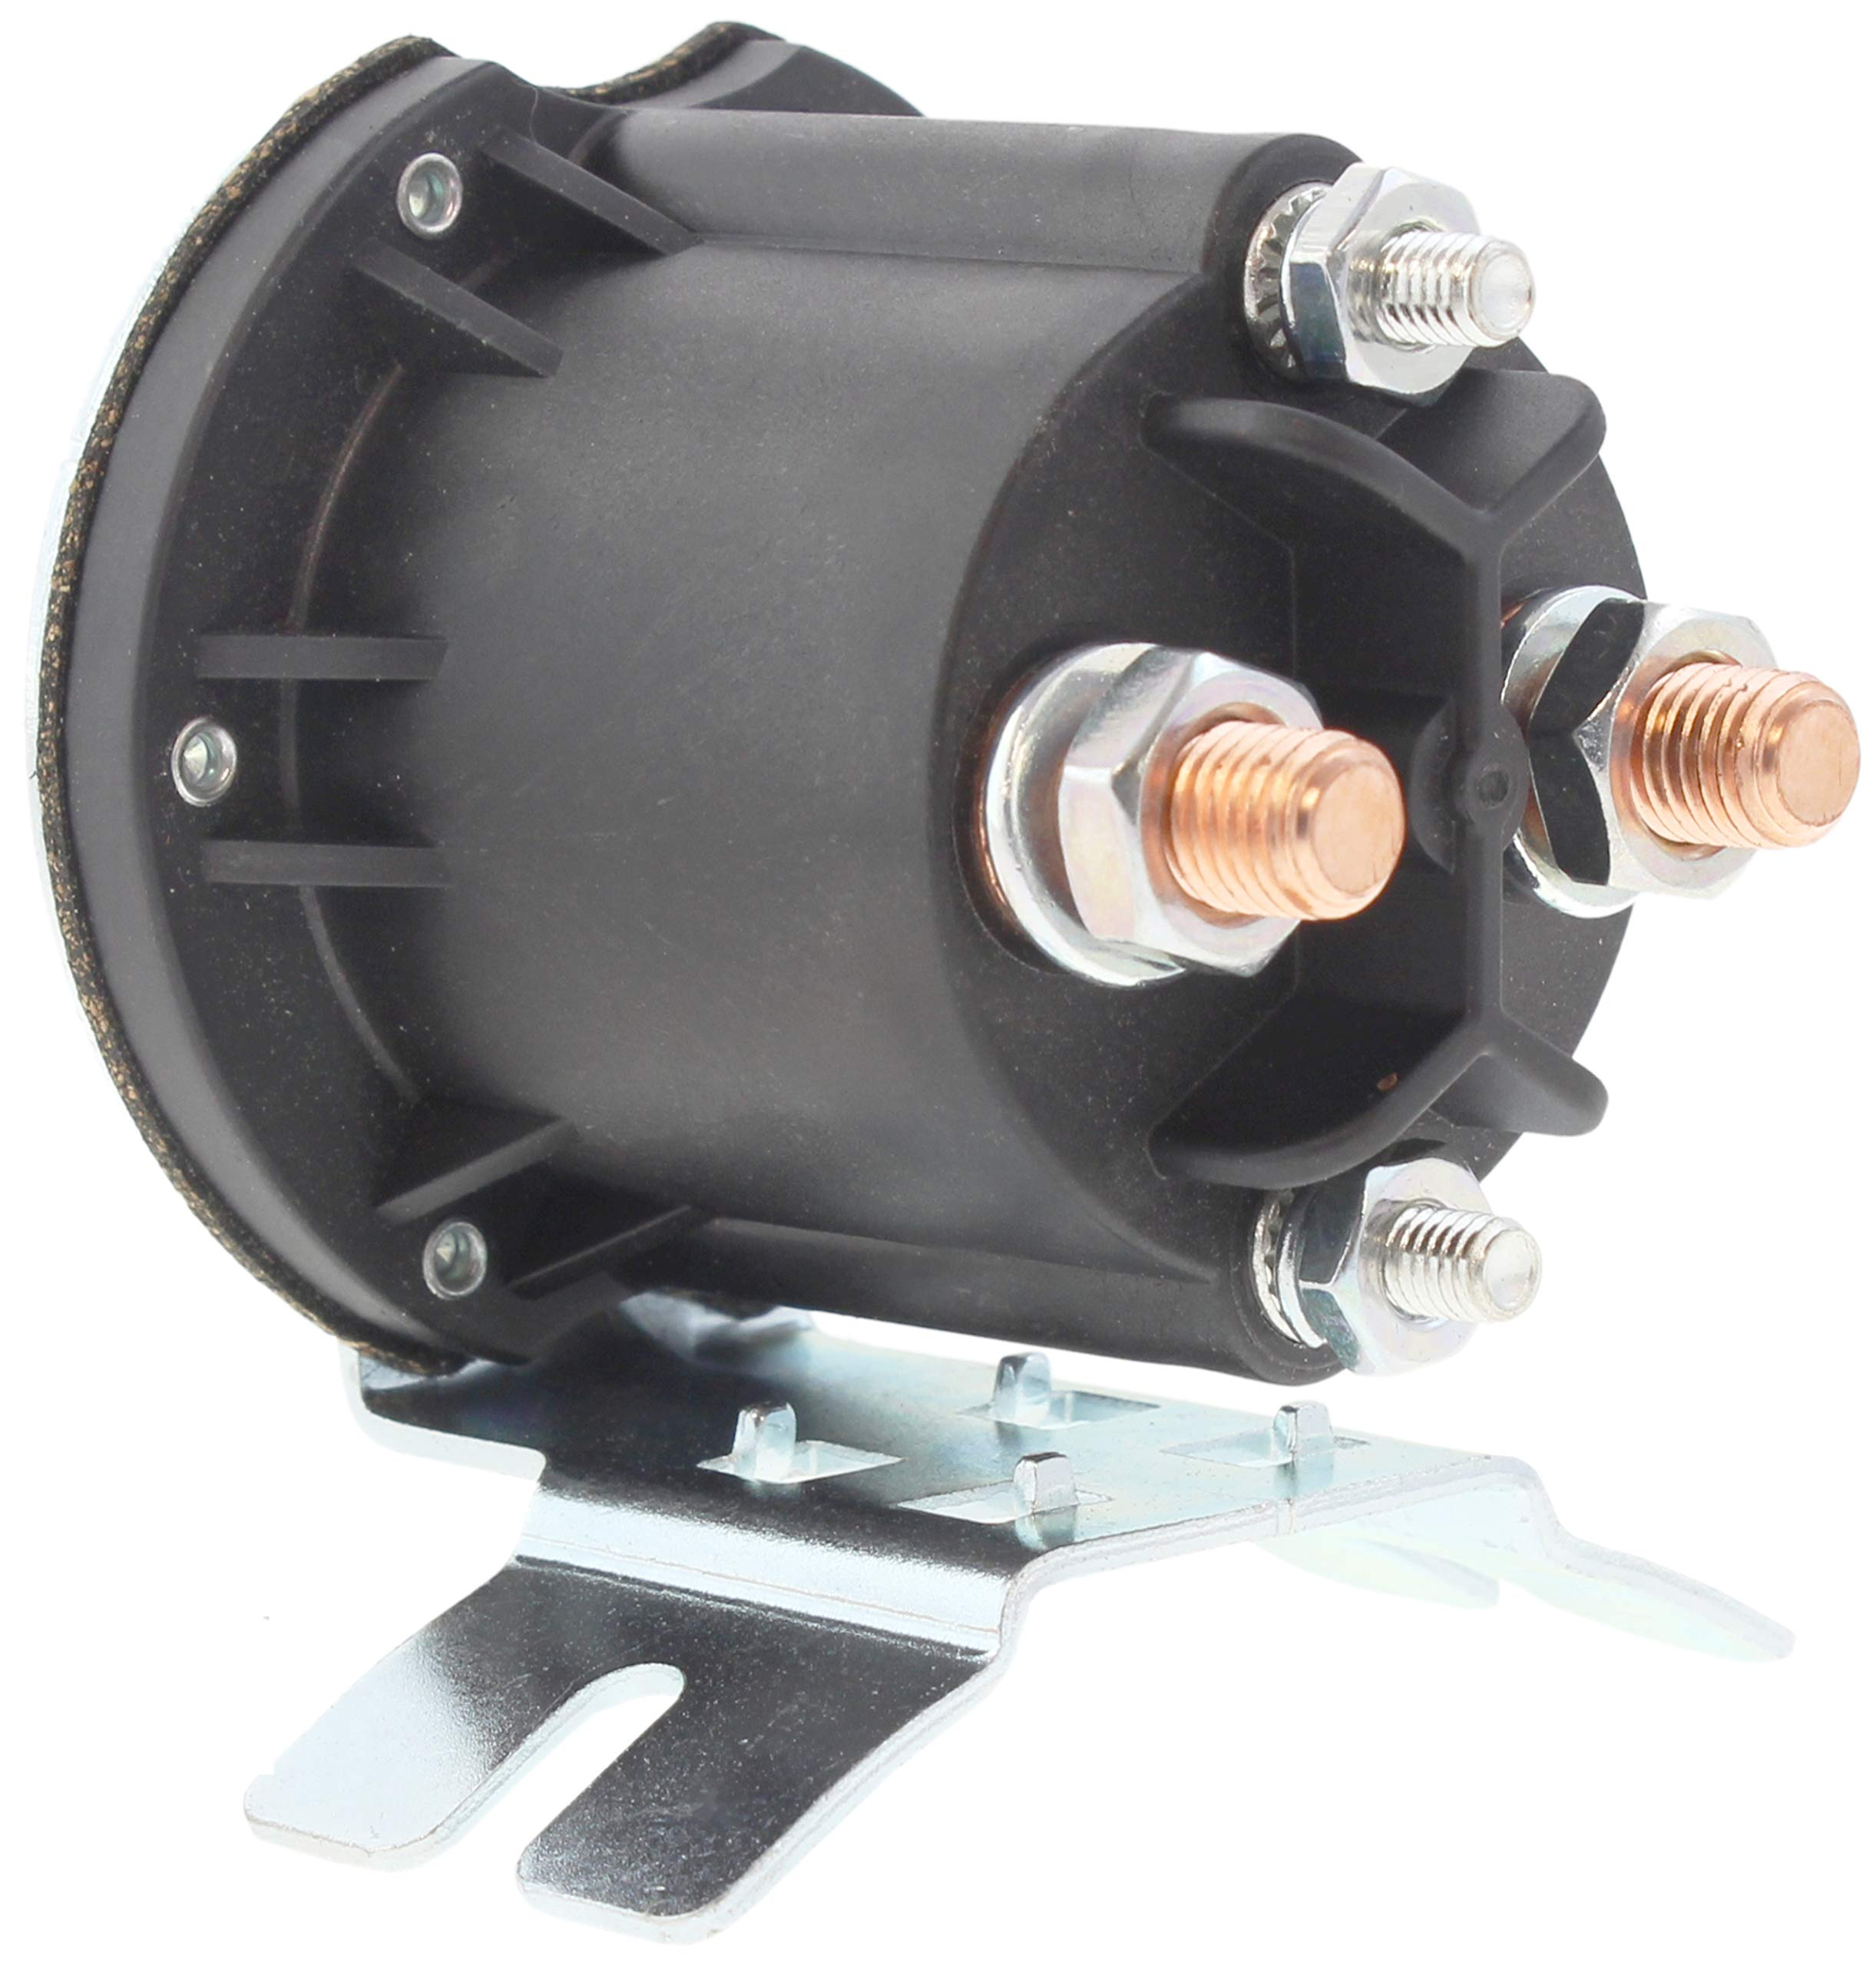 New Premium OEM Trombetta Solenoid Relay Switch fits Primer Pump Motors 12V 200A Insulated 4 Terminal Curved Mount